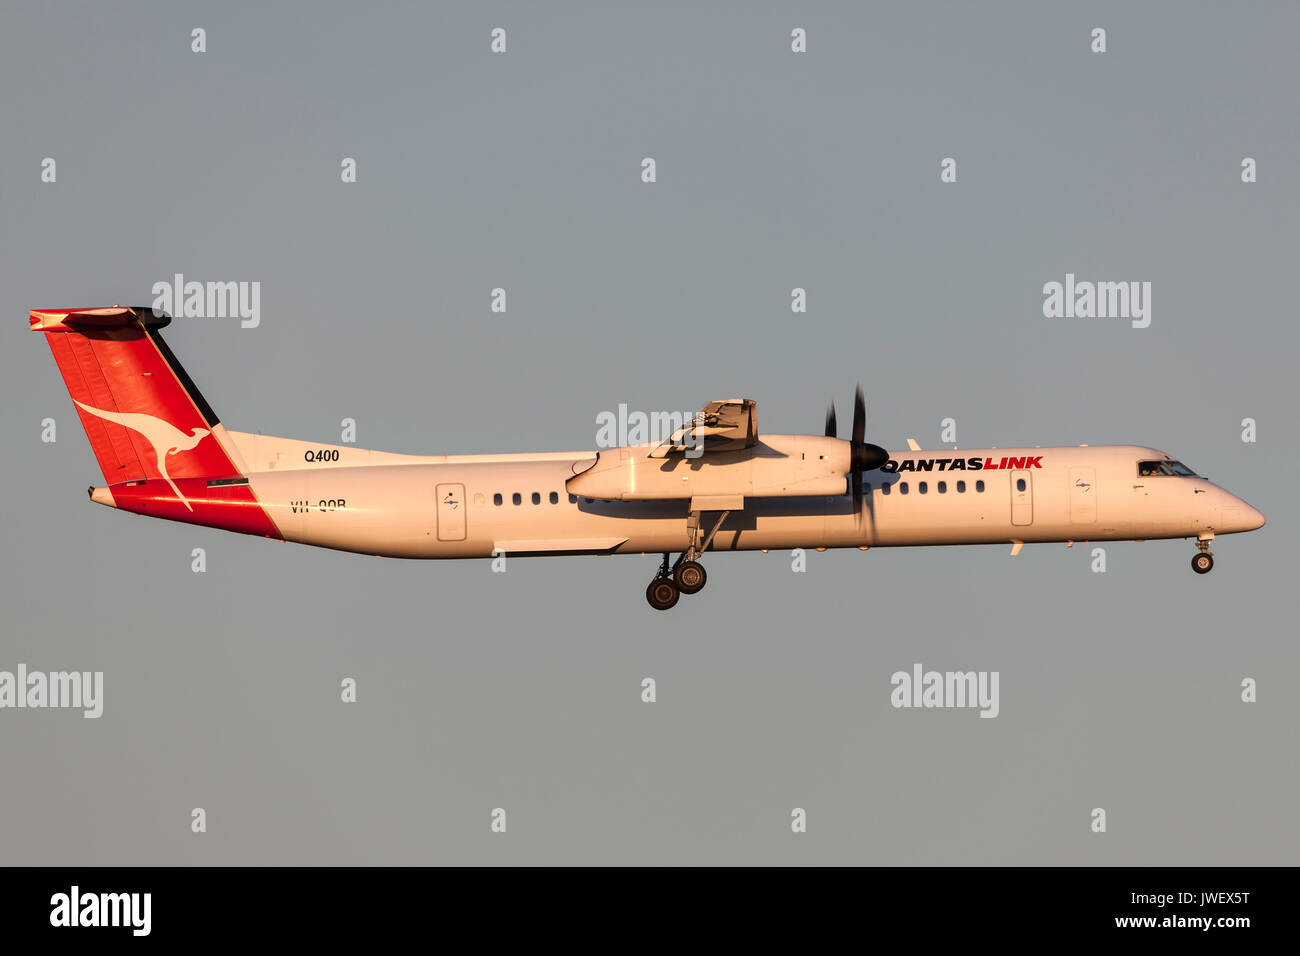 QantasLink de Havilland Canada DHC-8-402Q (Dash 8 Q400) VH-QOR on approach to land at Melbourne International Airport. - Stock Image